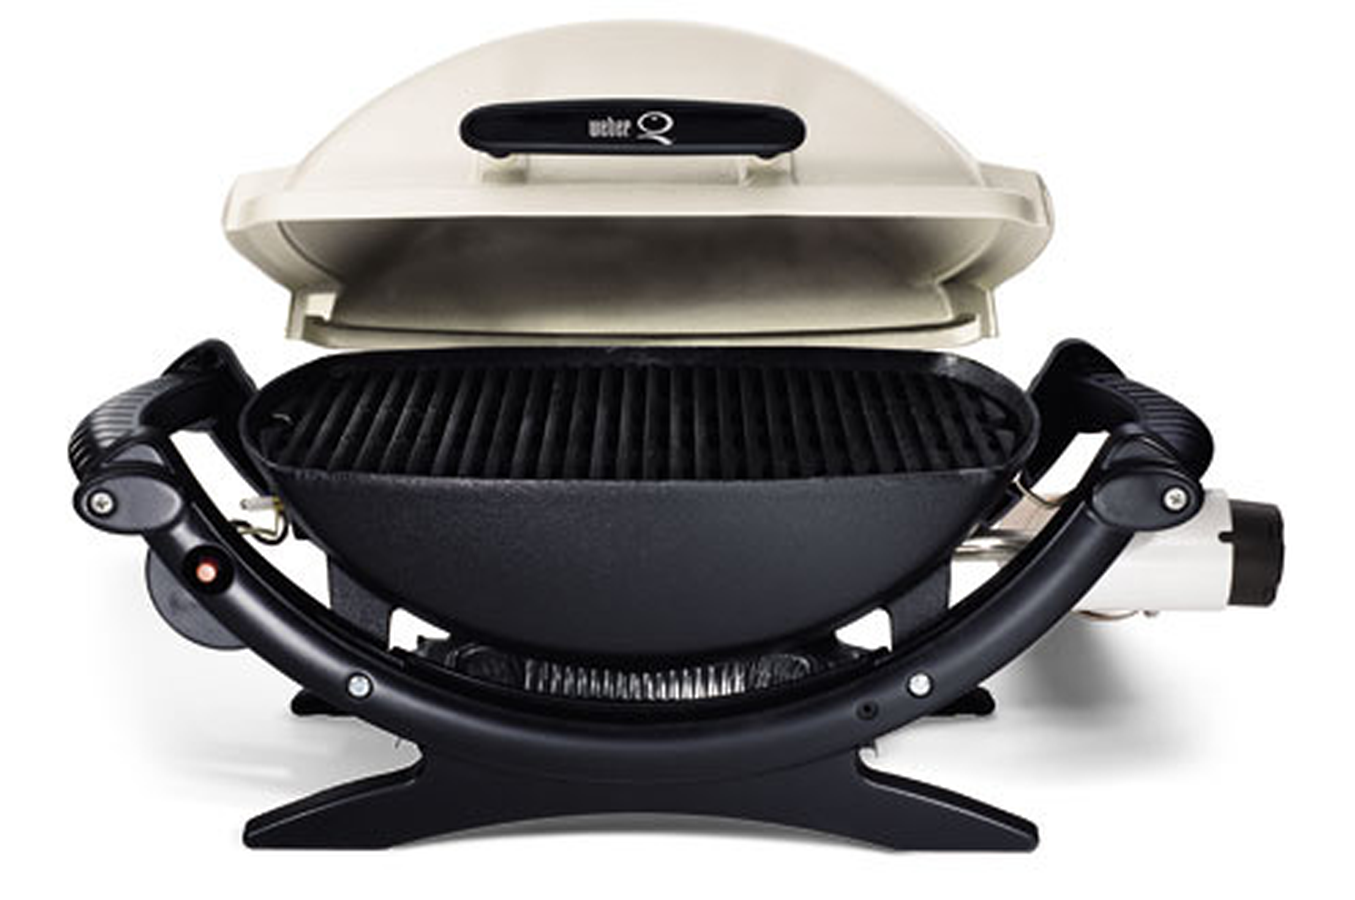 barbecue weber gaz promo barbecue weber a gaz en promo. Black Bedroom Furniture Sets. Home Design Ideas